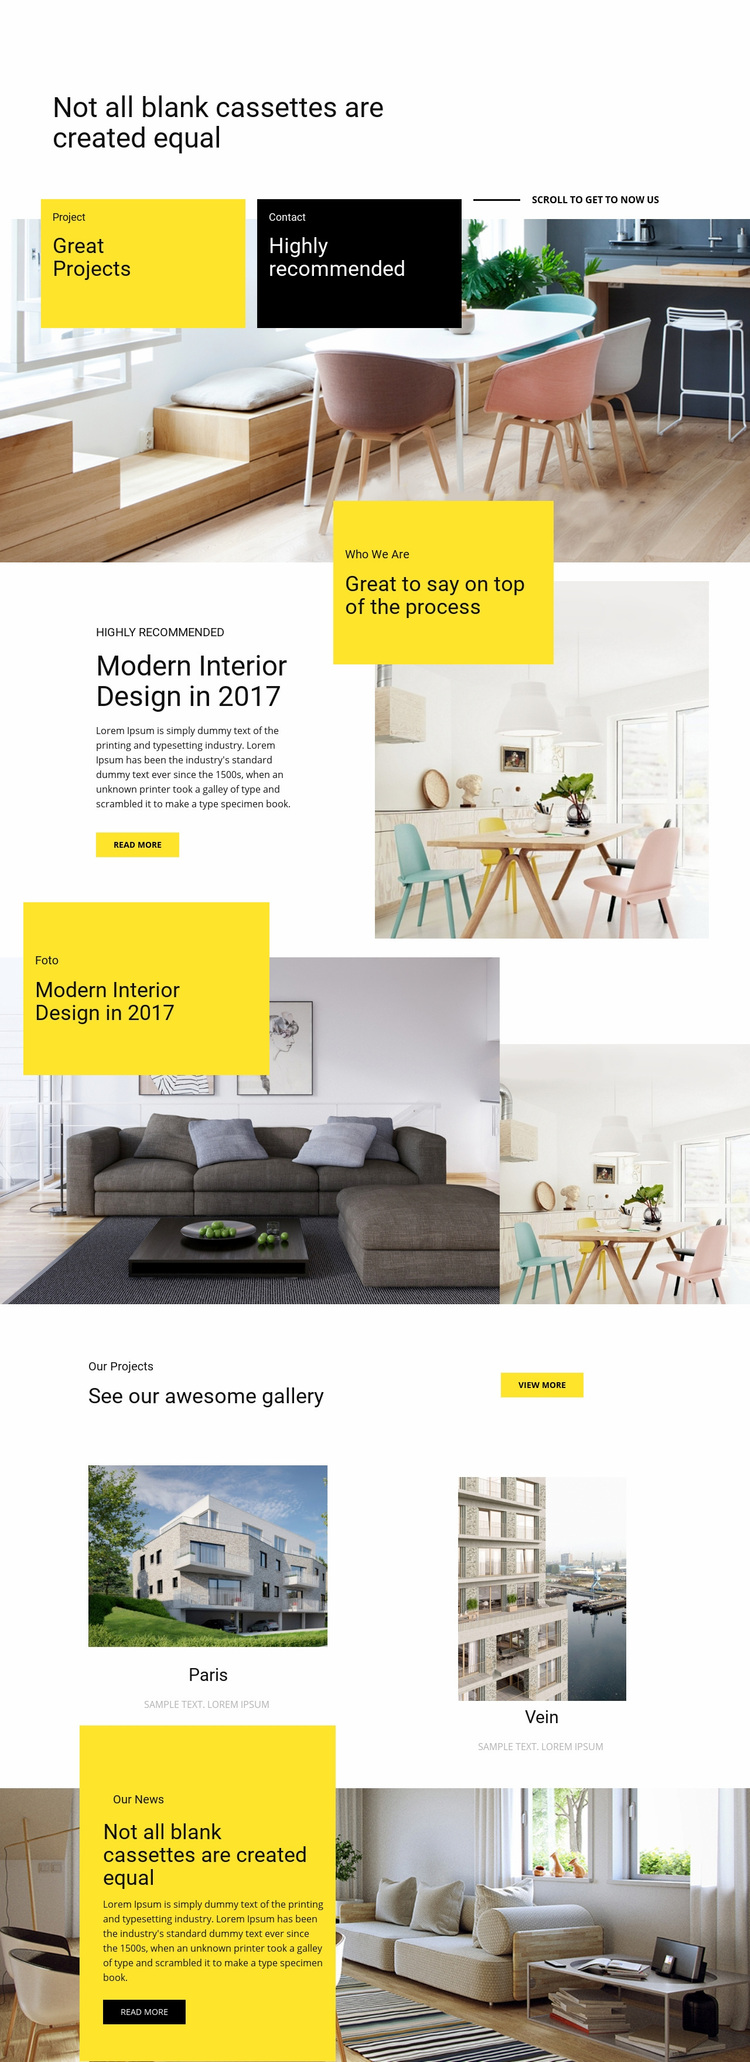 Great projects, high quality Web Page Designer